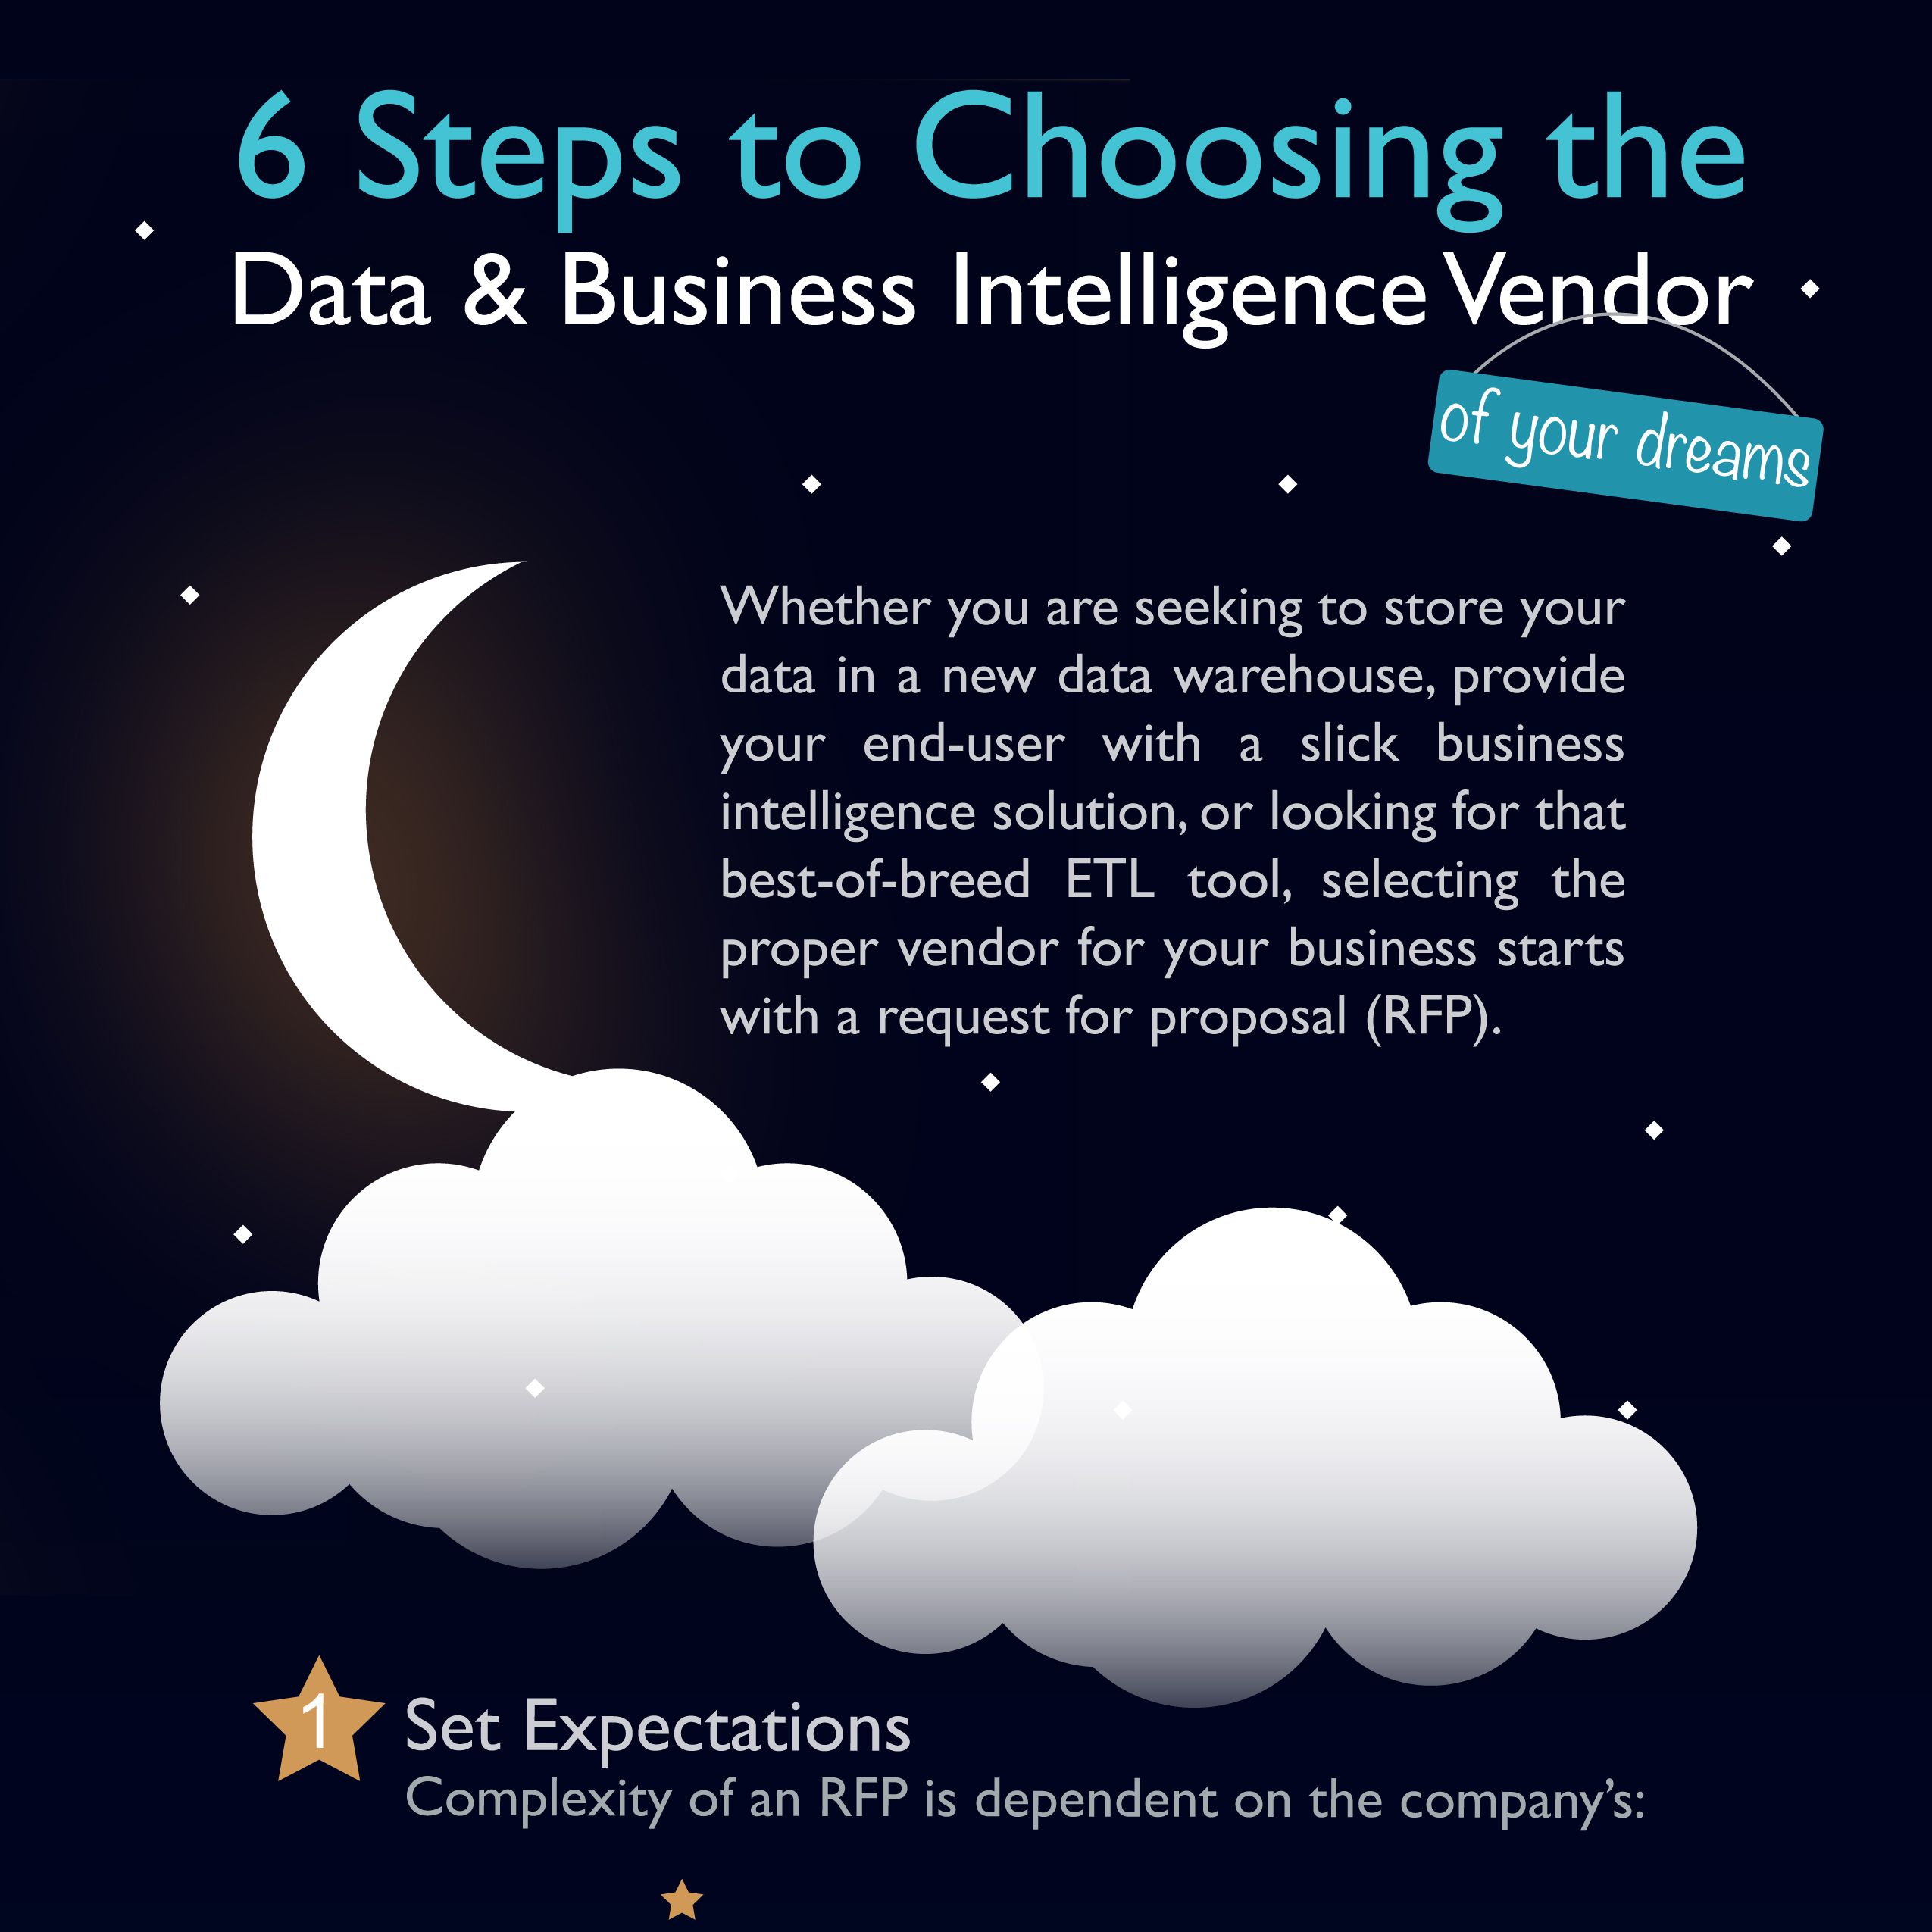 6 Steps to Choosing the Data & Business Intelligence Vendor of Your Dreams